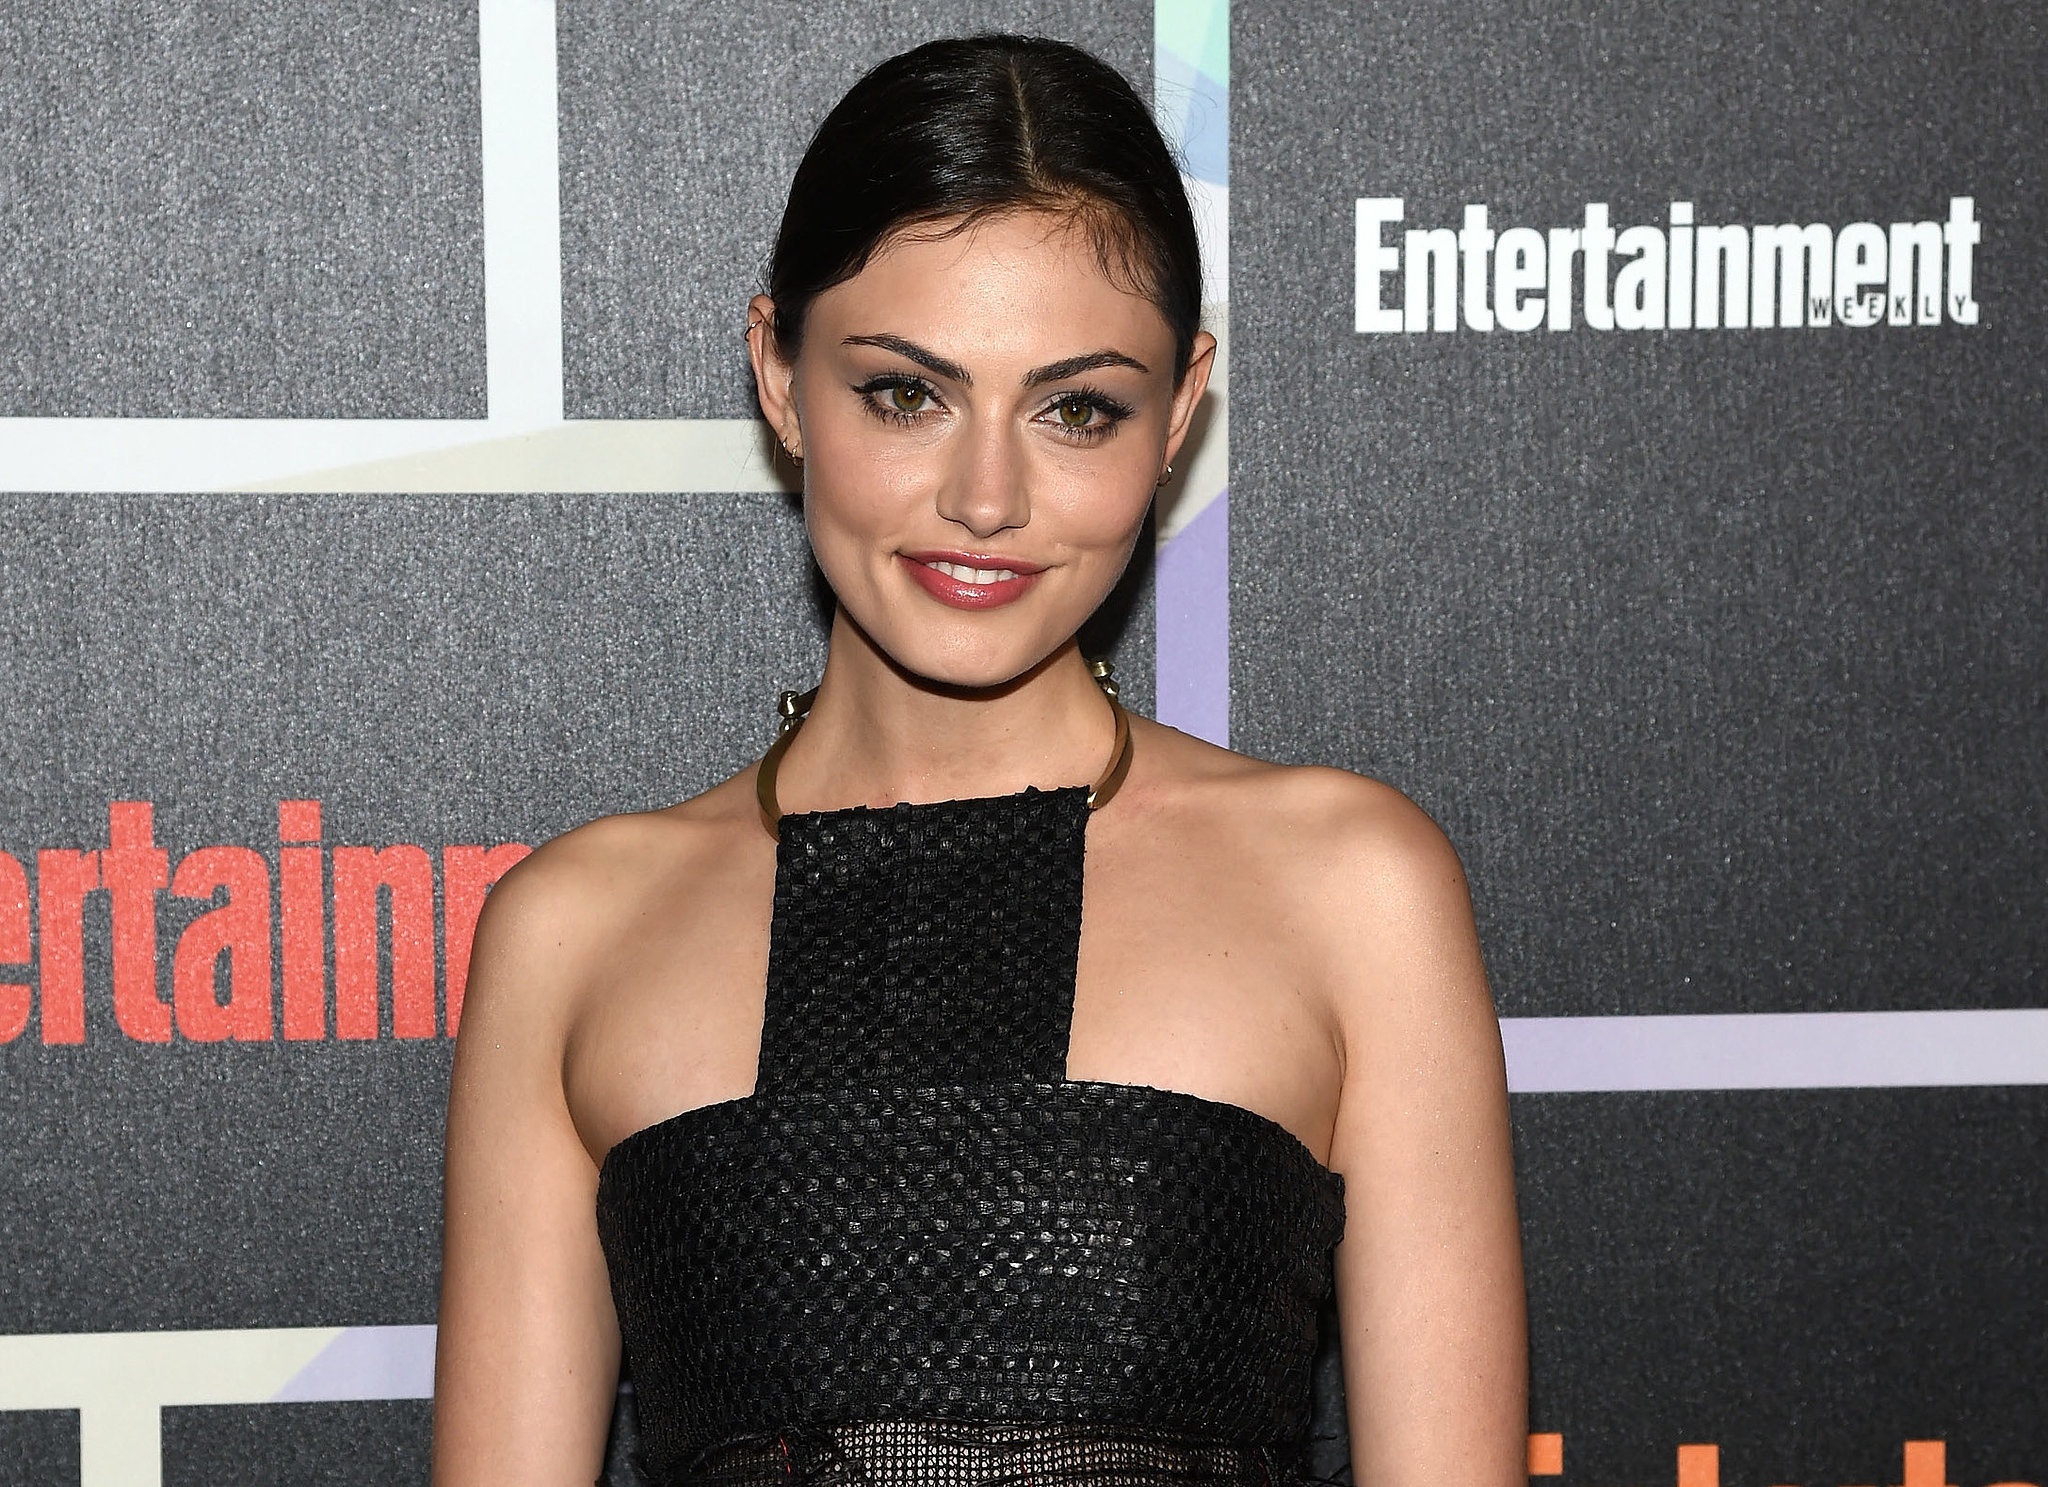 Daily Phoebe Tonkin Wallpapers Hd